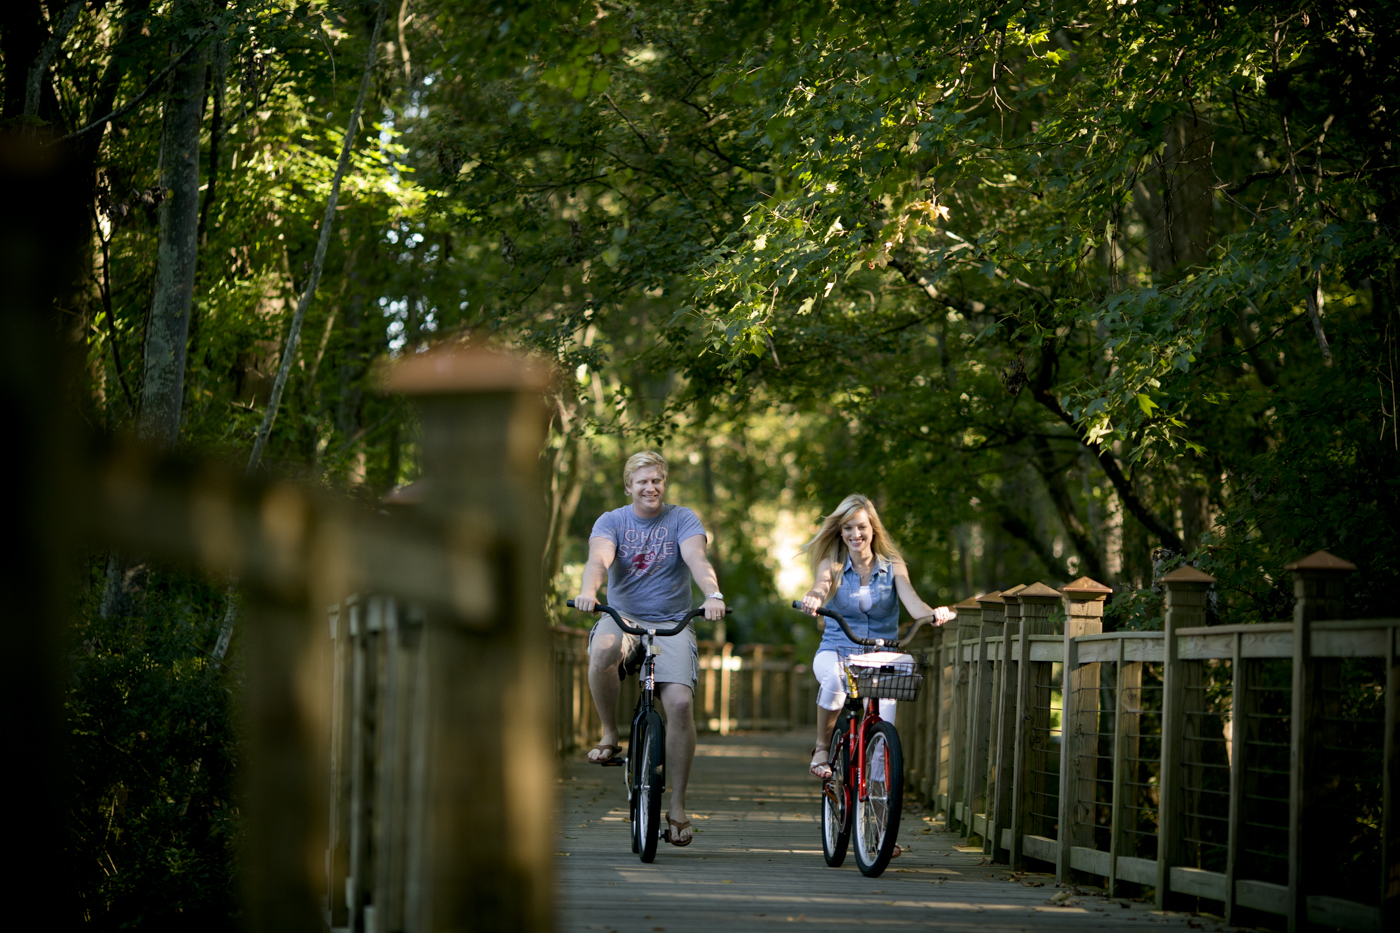 couple riding bikes on wooden path through woods